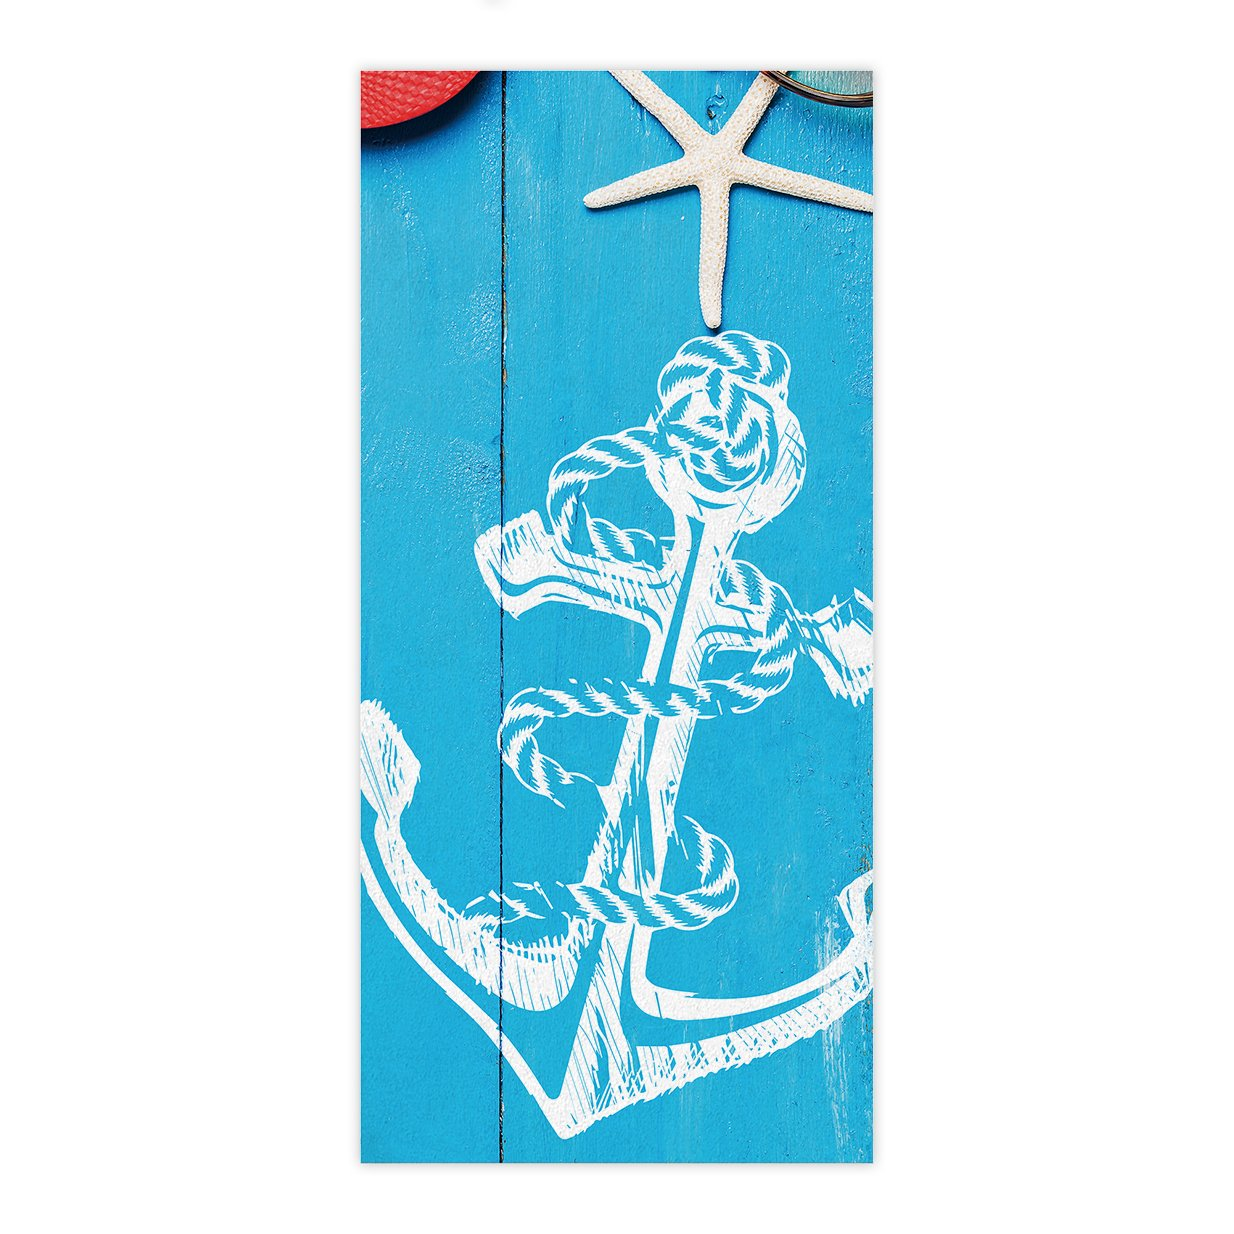 OxOHome Custom Bath Towel Quick Dry Absorbent Towels Spa Shower Wrap for College Dorms, Gyms, Locker Rooms, 27.5 x 55 inch - Summer Ocean Theme - Starfish Anchor Sunglass Hat Flip Flop